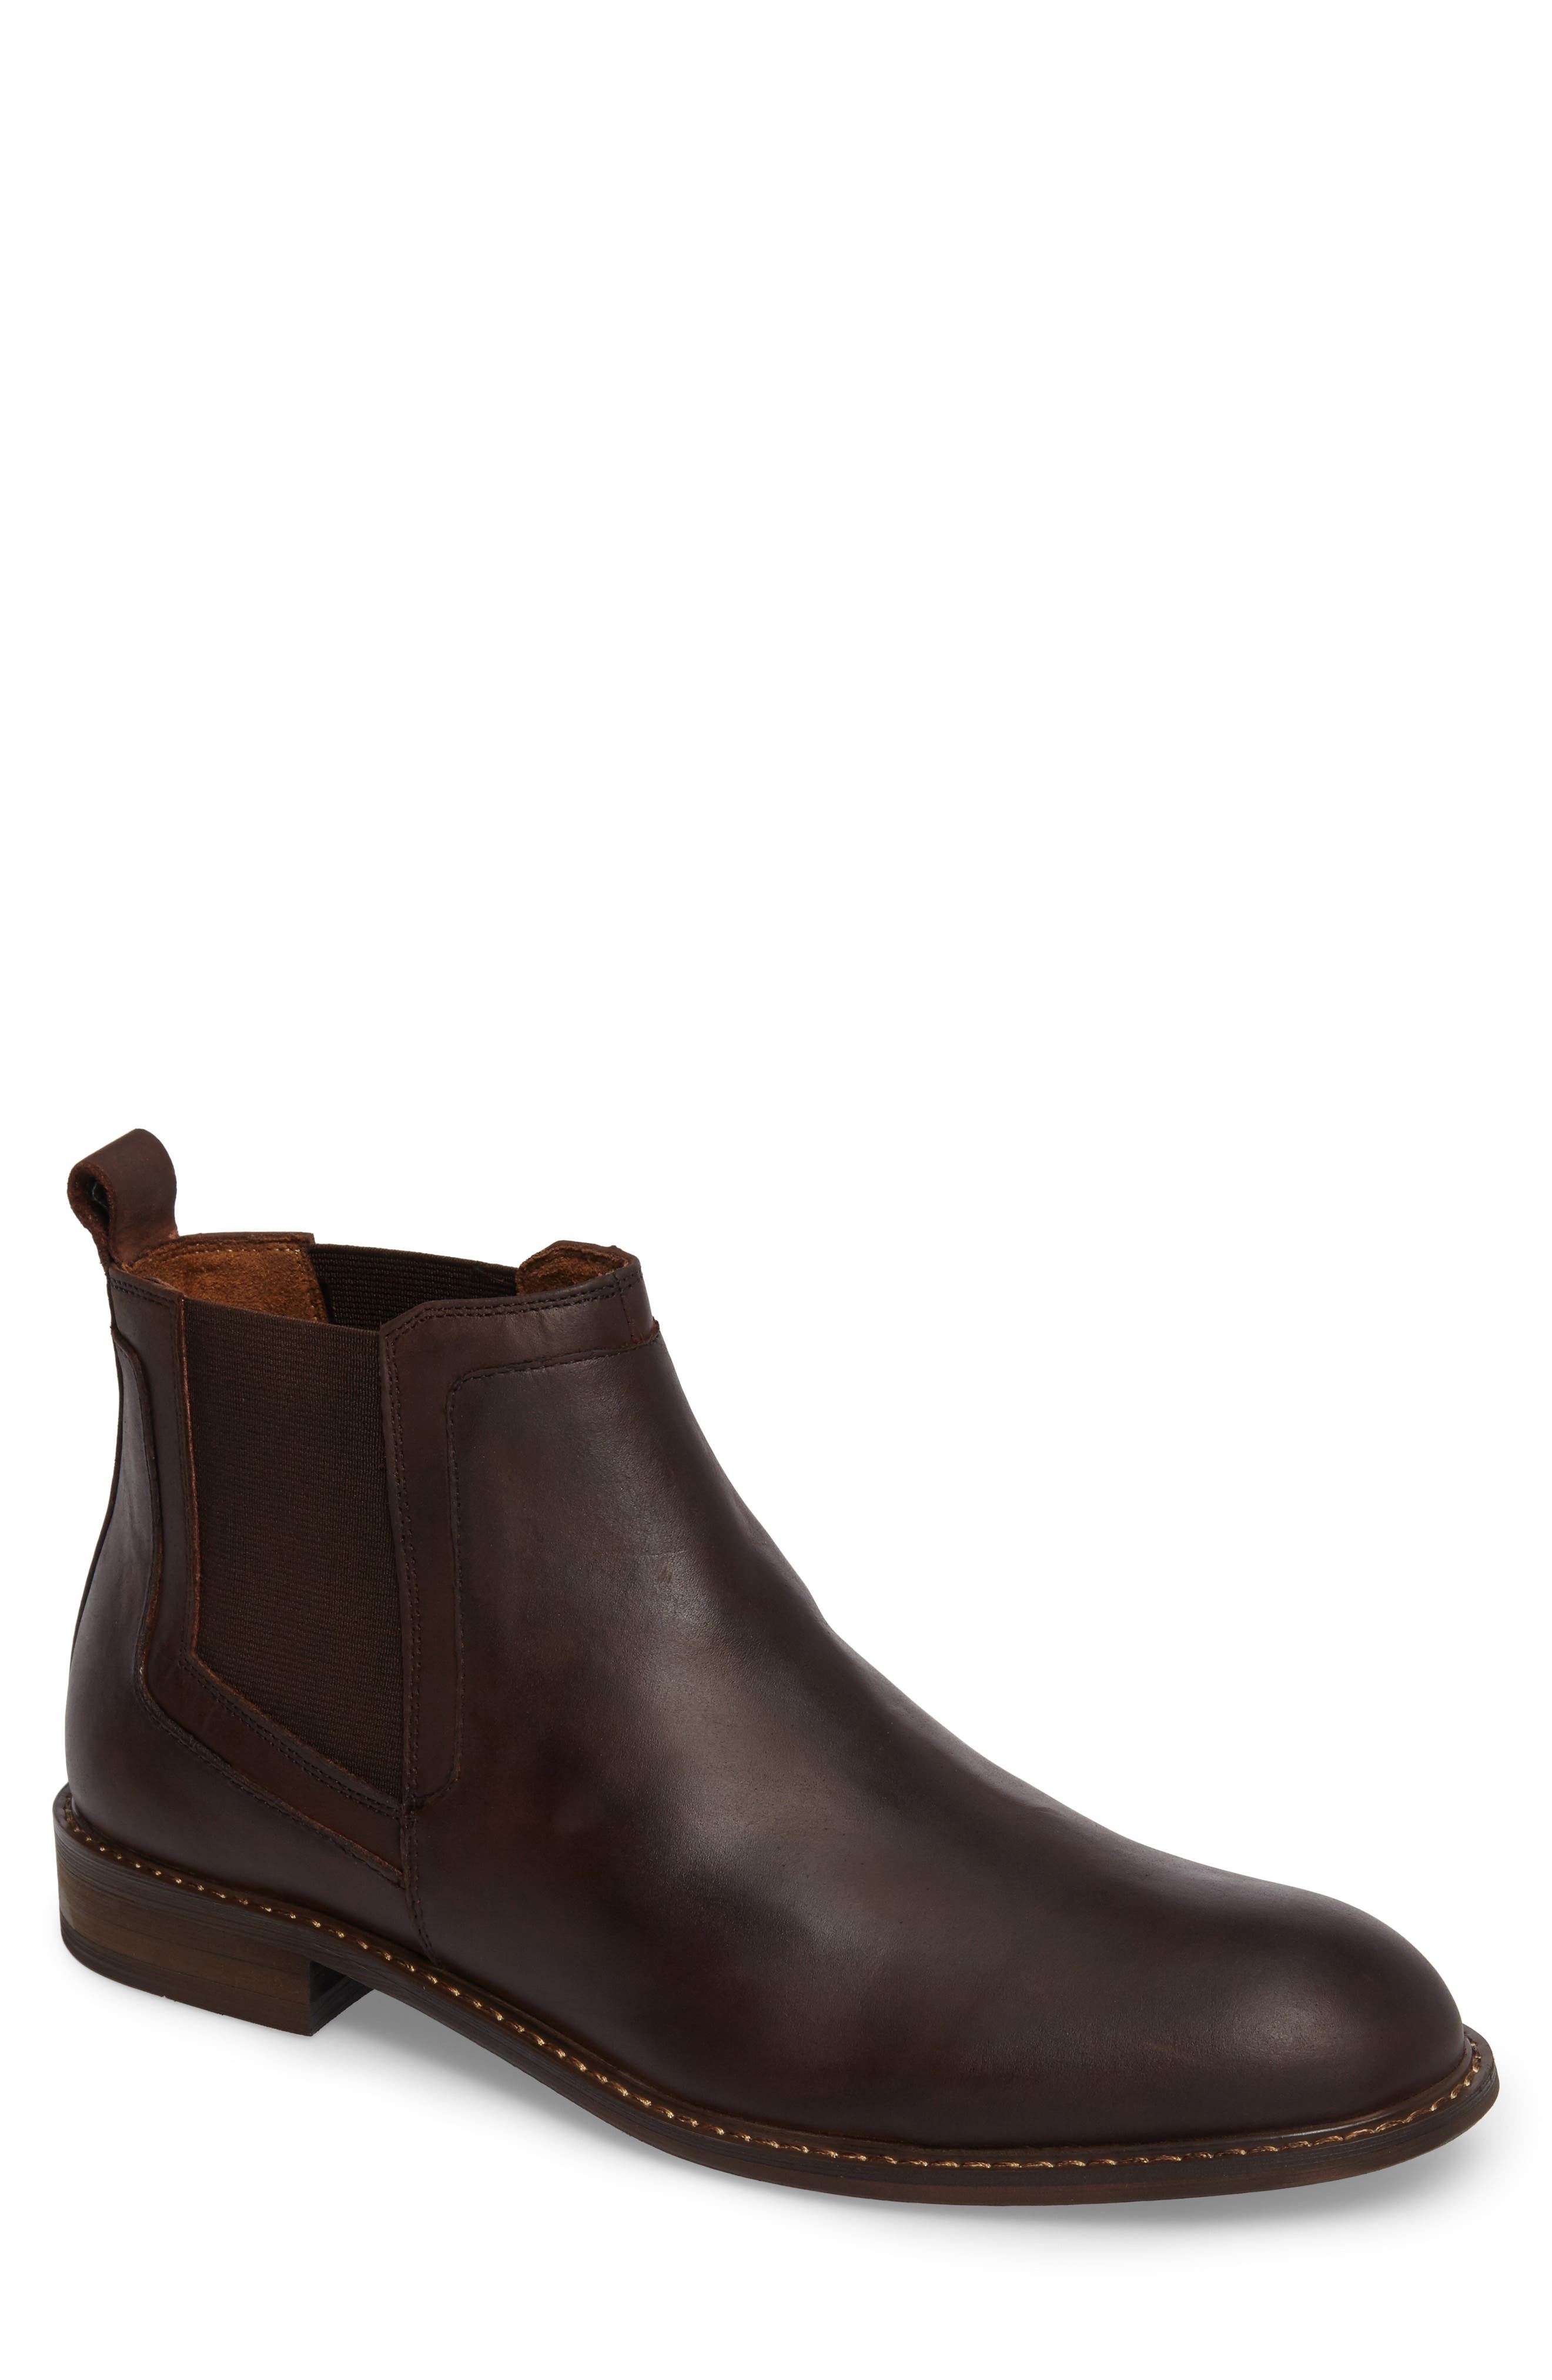 Chlesea Boot,                             Main thumbnail 1, color,                             Brown Leather